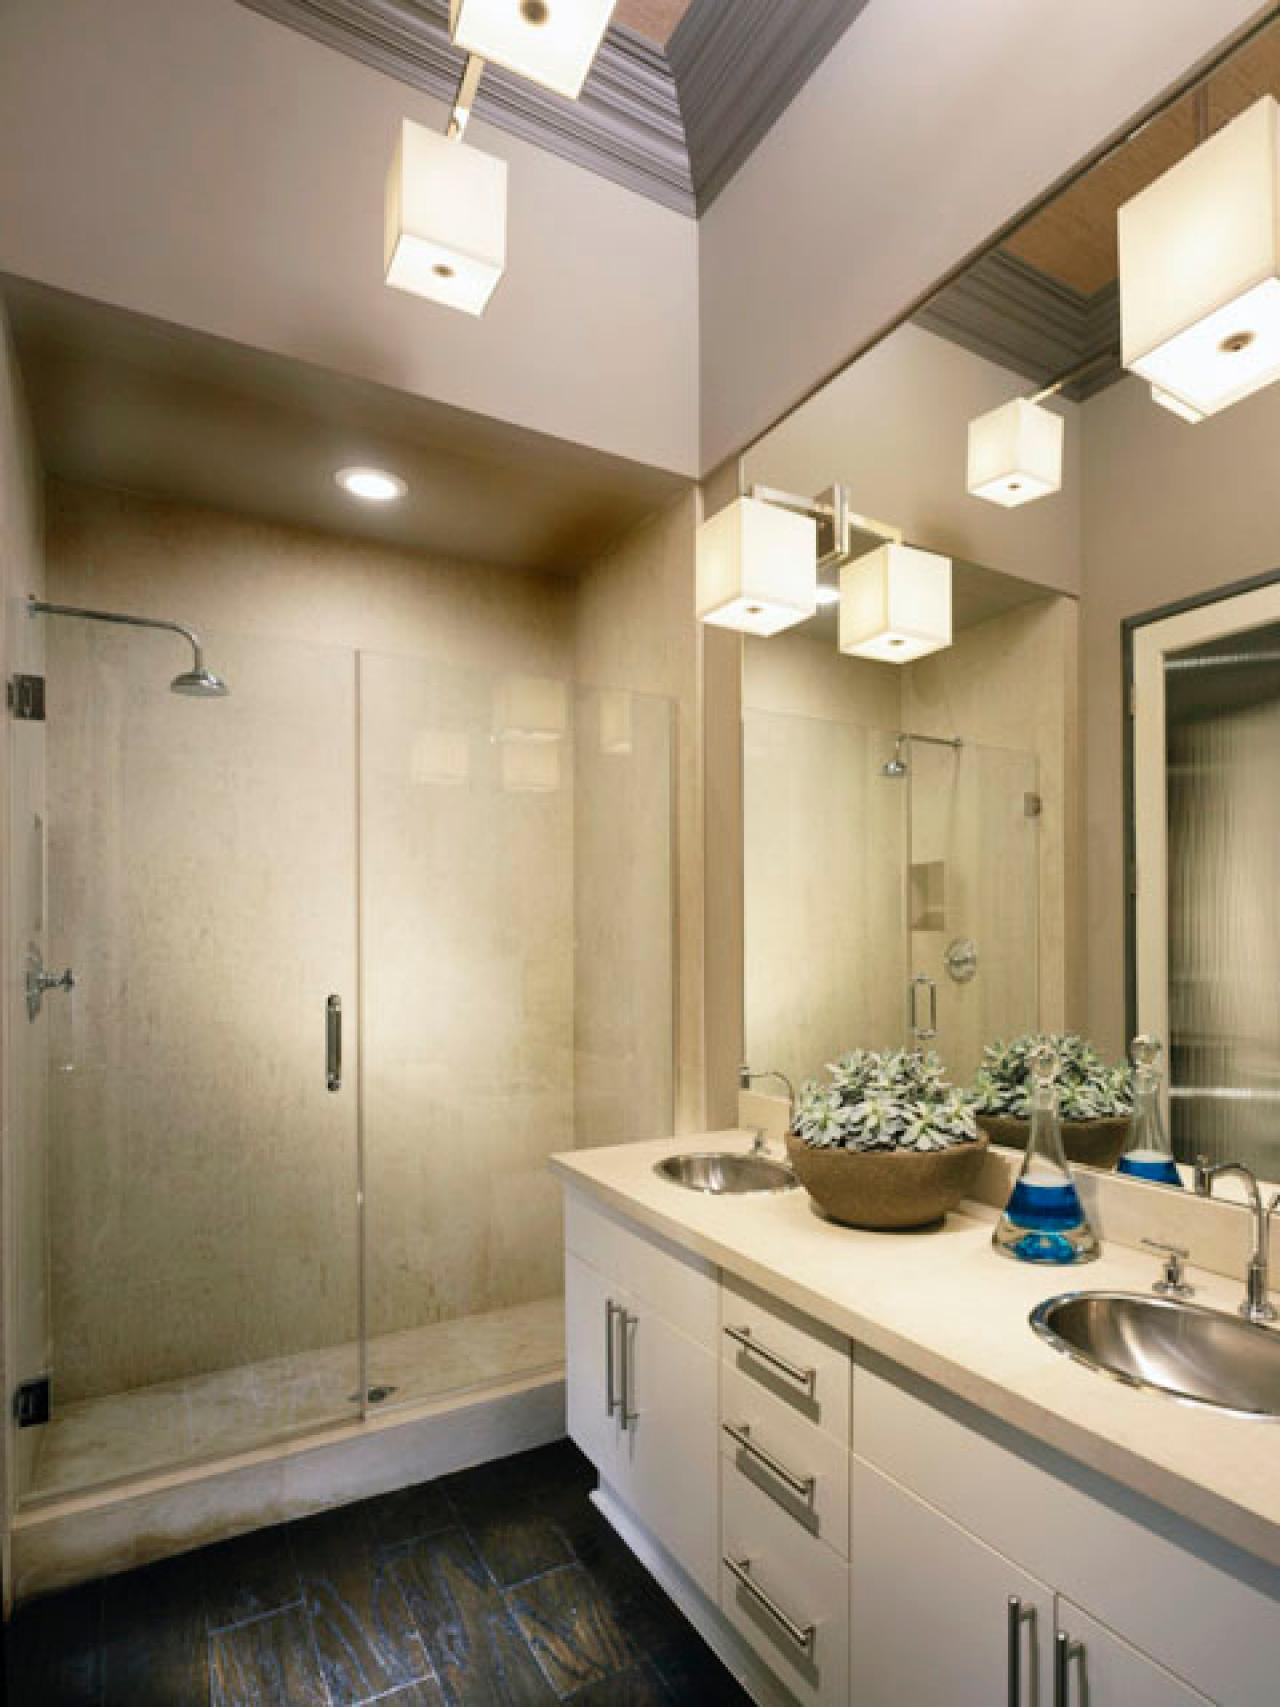 Designing bathroom lighting hgtv for Bathroom lighting design